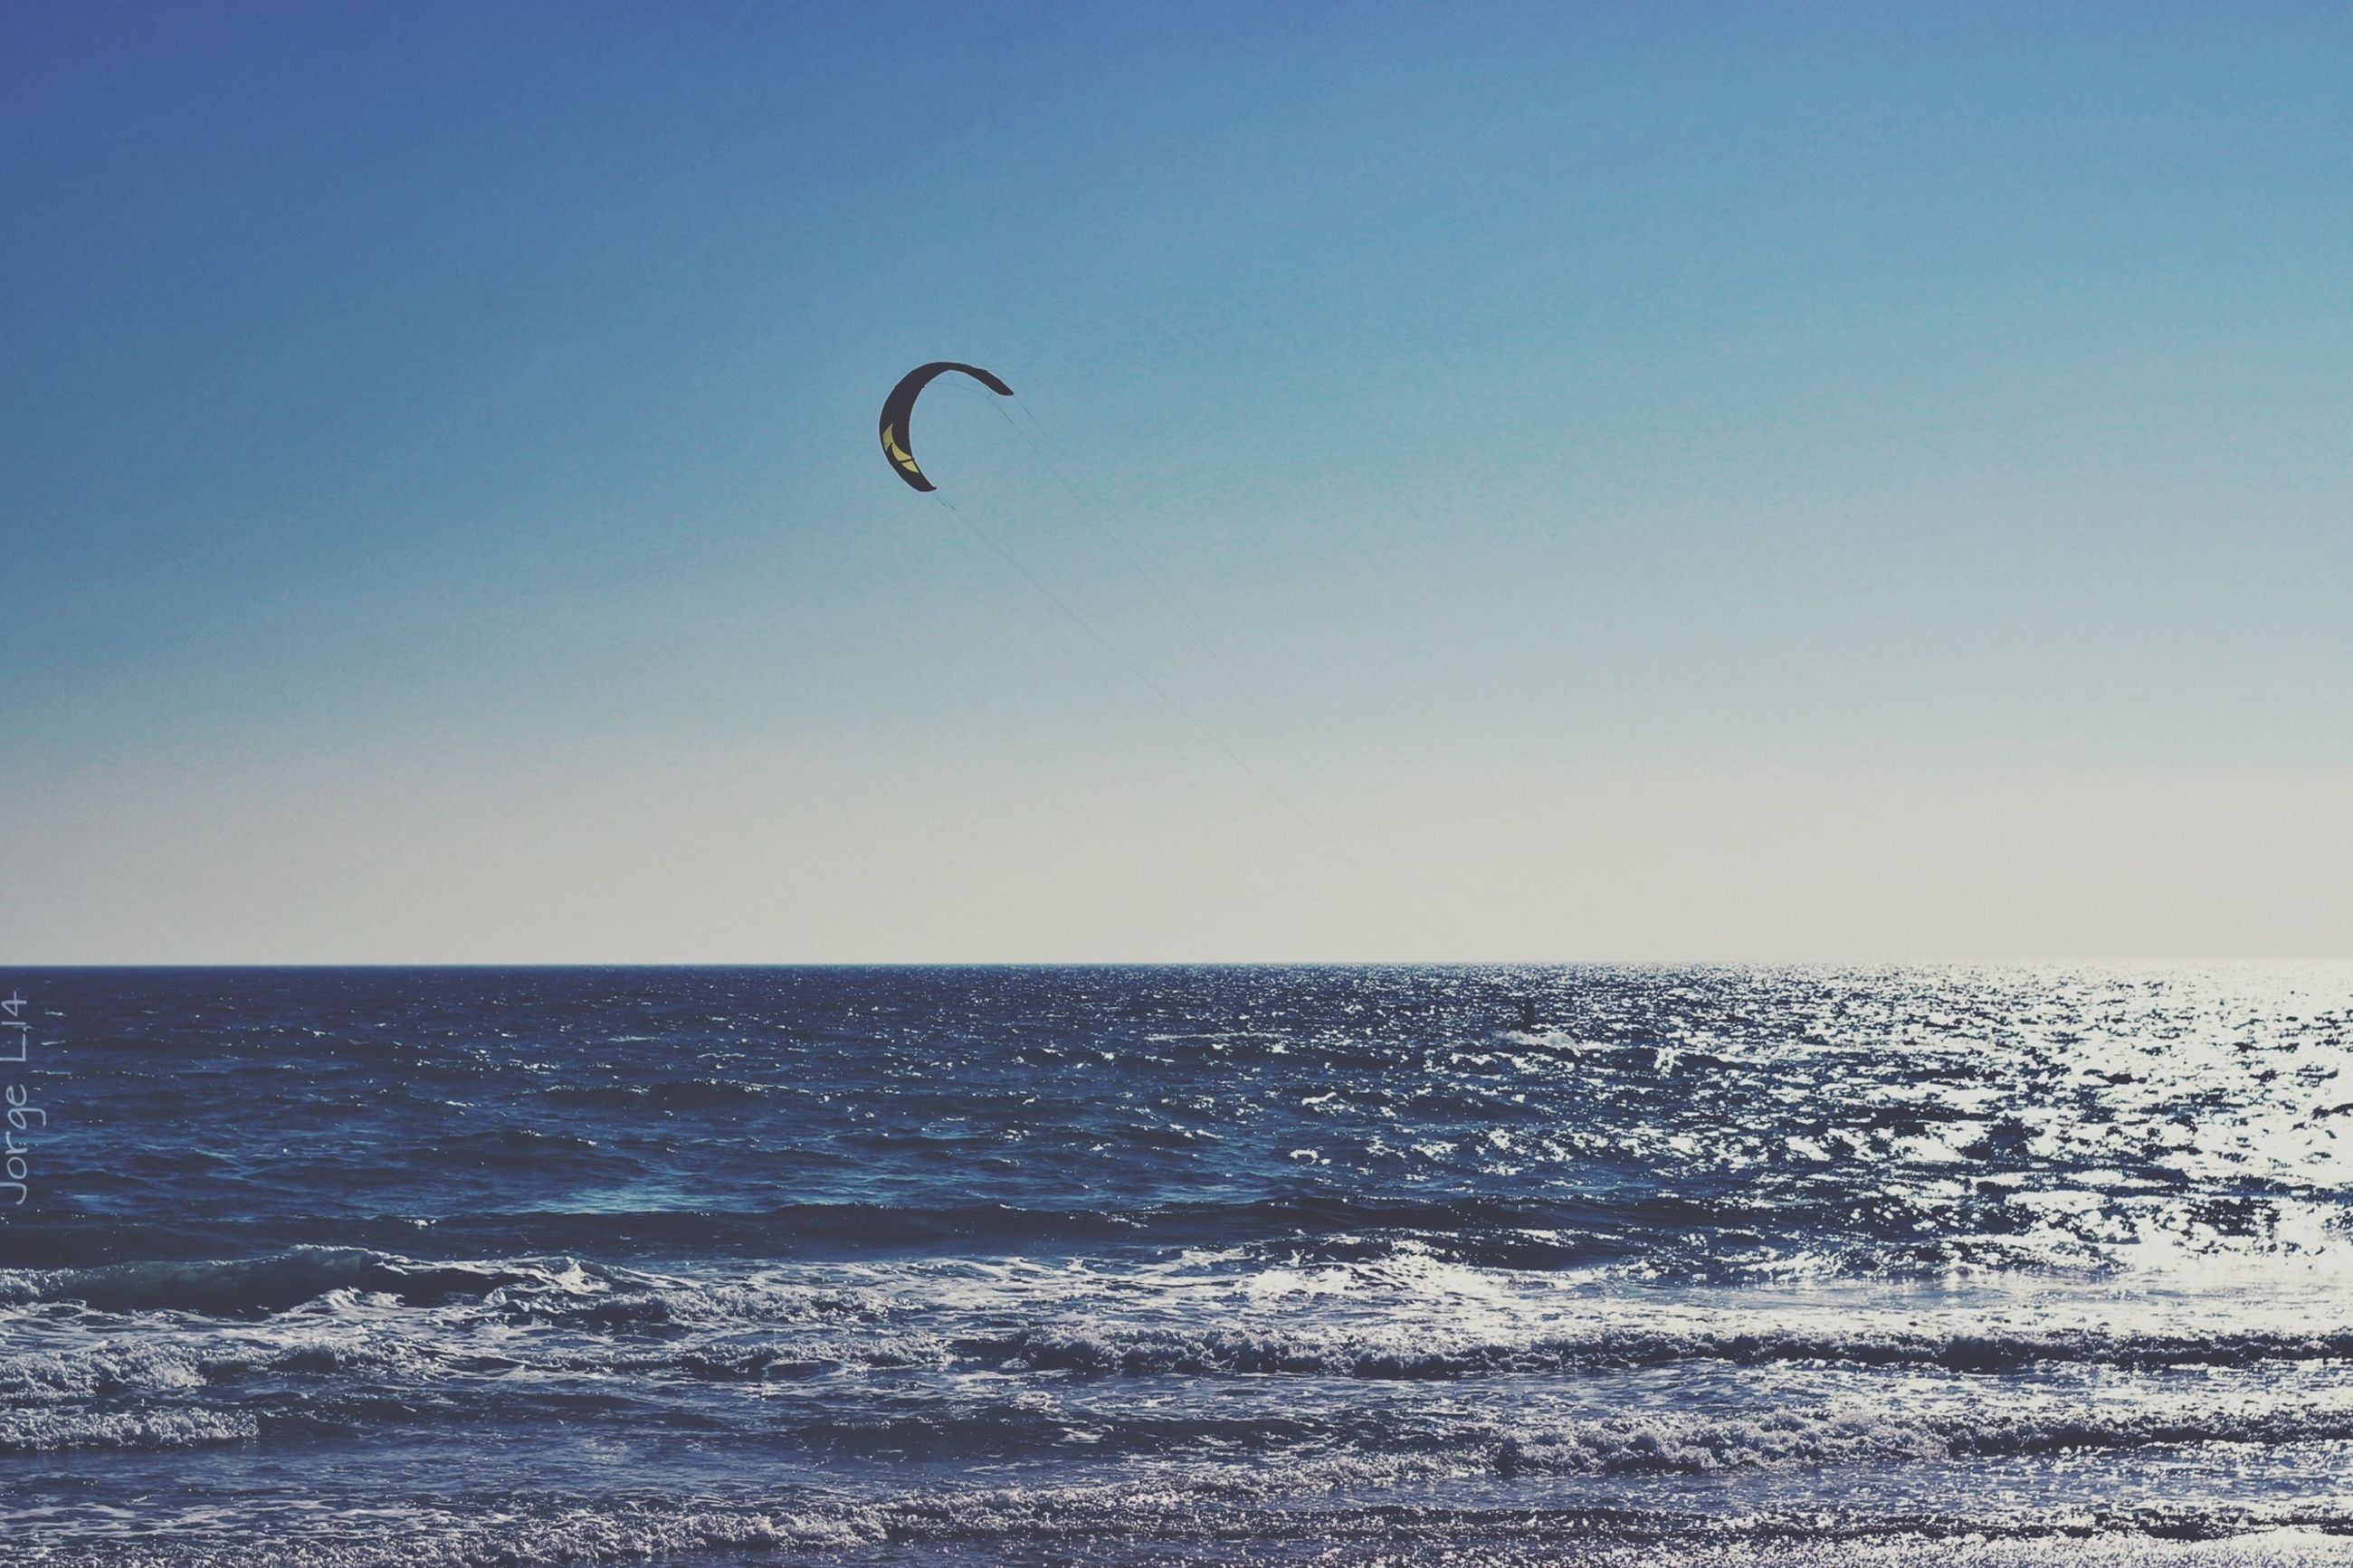 clear sky, flying, copy space, mid-air, low angle view, blue, bird, animal themes, one animal, animals in the wild, nature, beauty in nature, motion, wildlife, day, full length, scenics, extreme sports, tranquility, outdoors